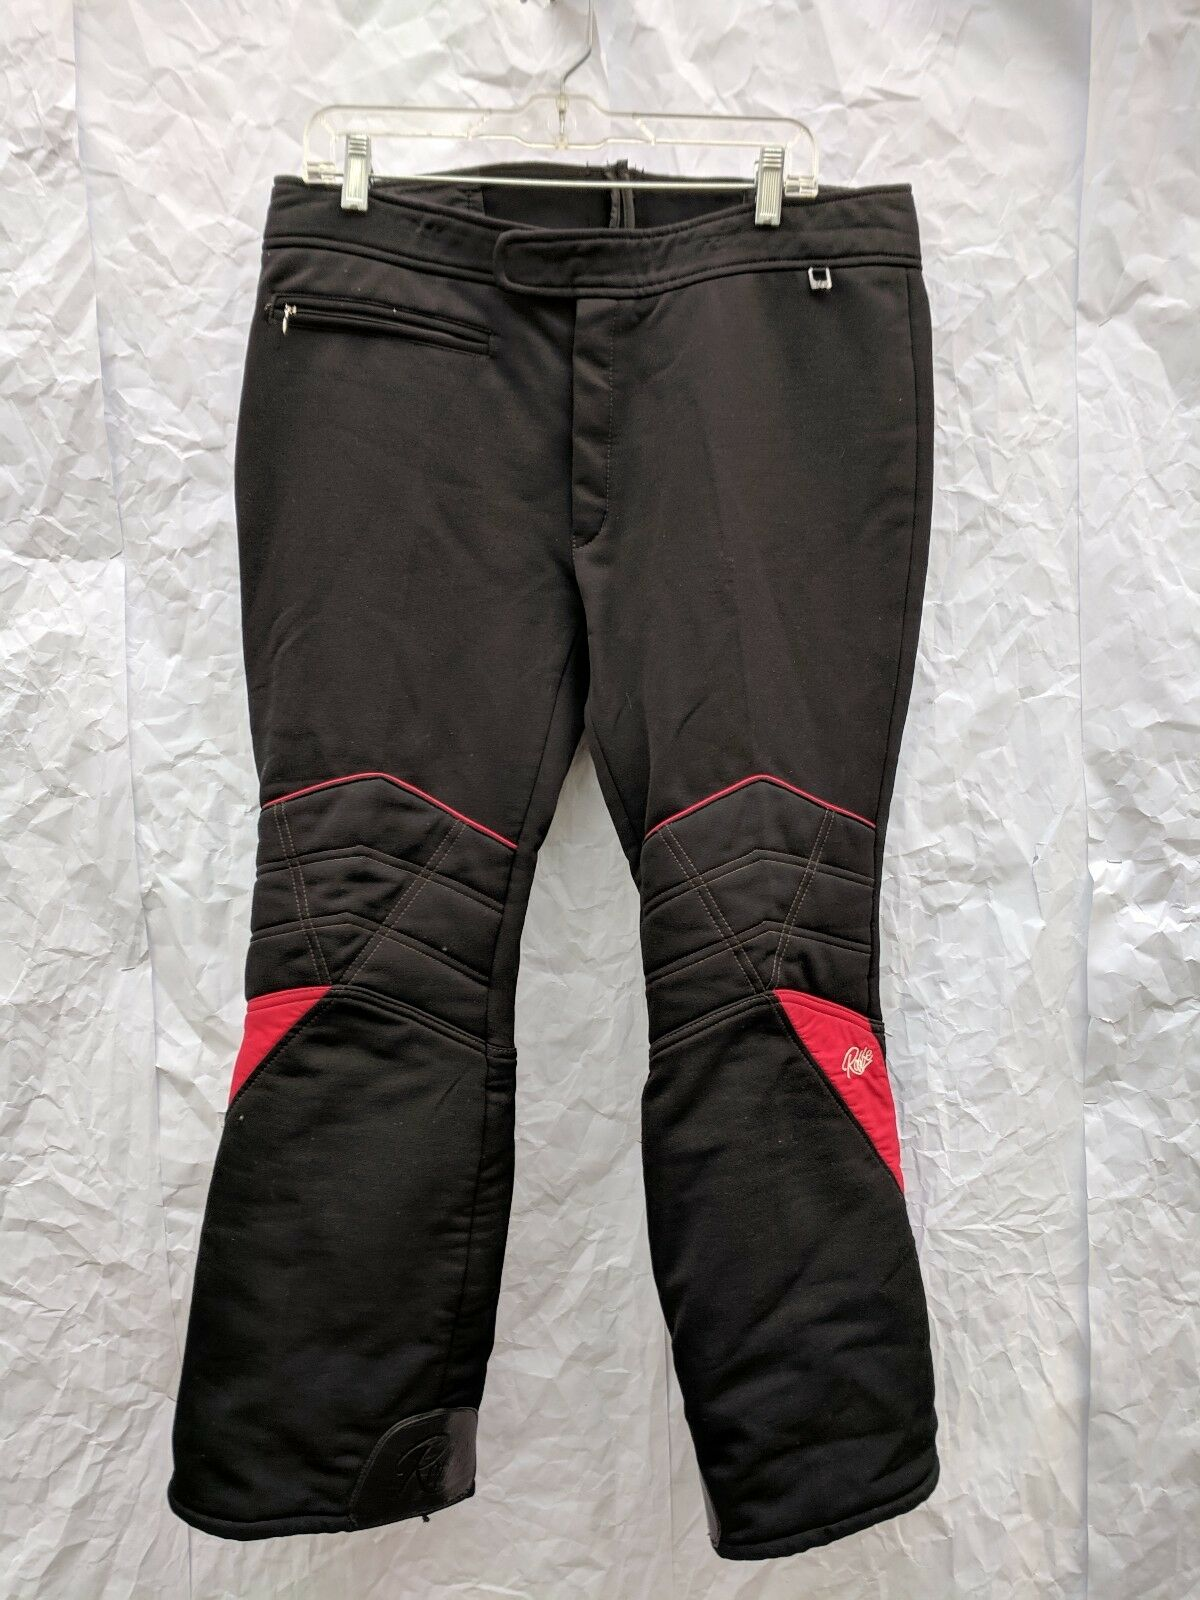 Vintage Roffe Flash Ski Racing Pants Mens 36-38 Short (altered) Made in USA